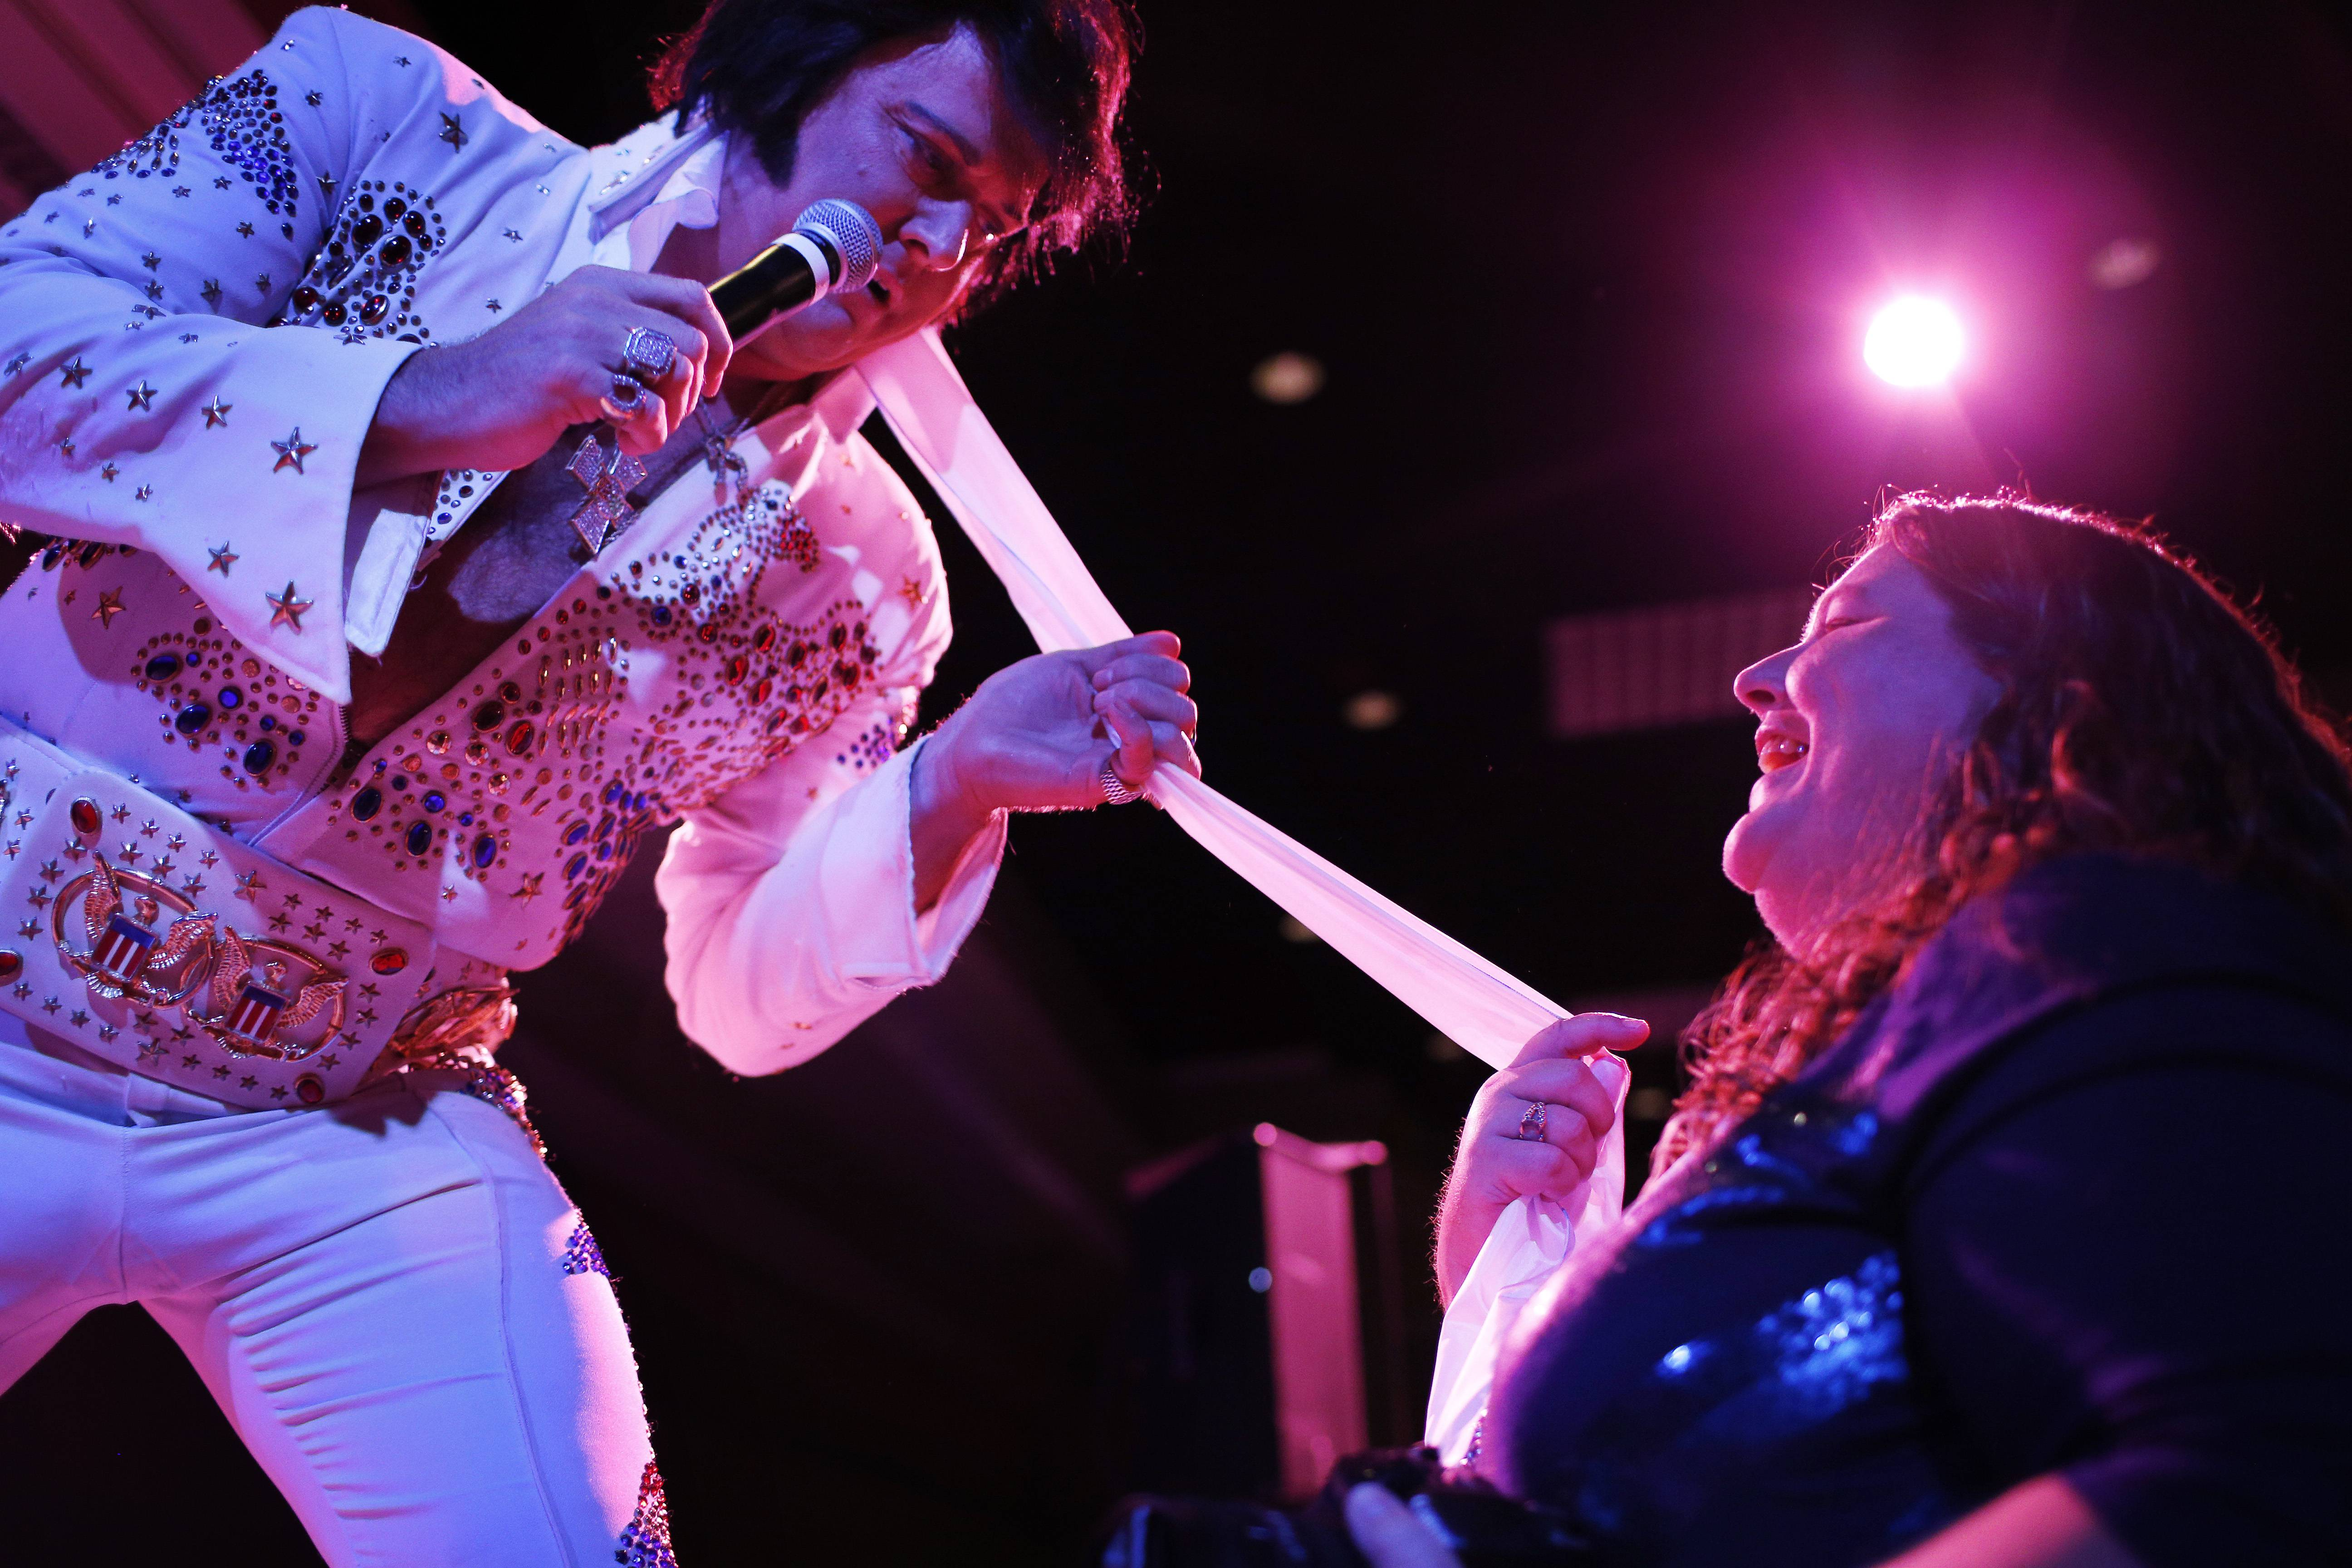 Elvis tribute artist Jim Westover, left, of Arizona City, Ariz., gives a scarf to fan Juanita Curtice, of Woodbridge, Va., during the Las Vegas Elvis Festival. Some three dozen Elvis tribute artists took their gyrating hips and curled lips to the stage over the weekend to see who could do the most convincing portrayal.